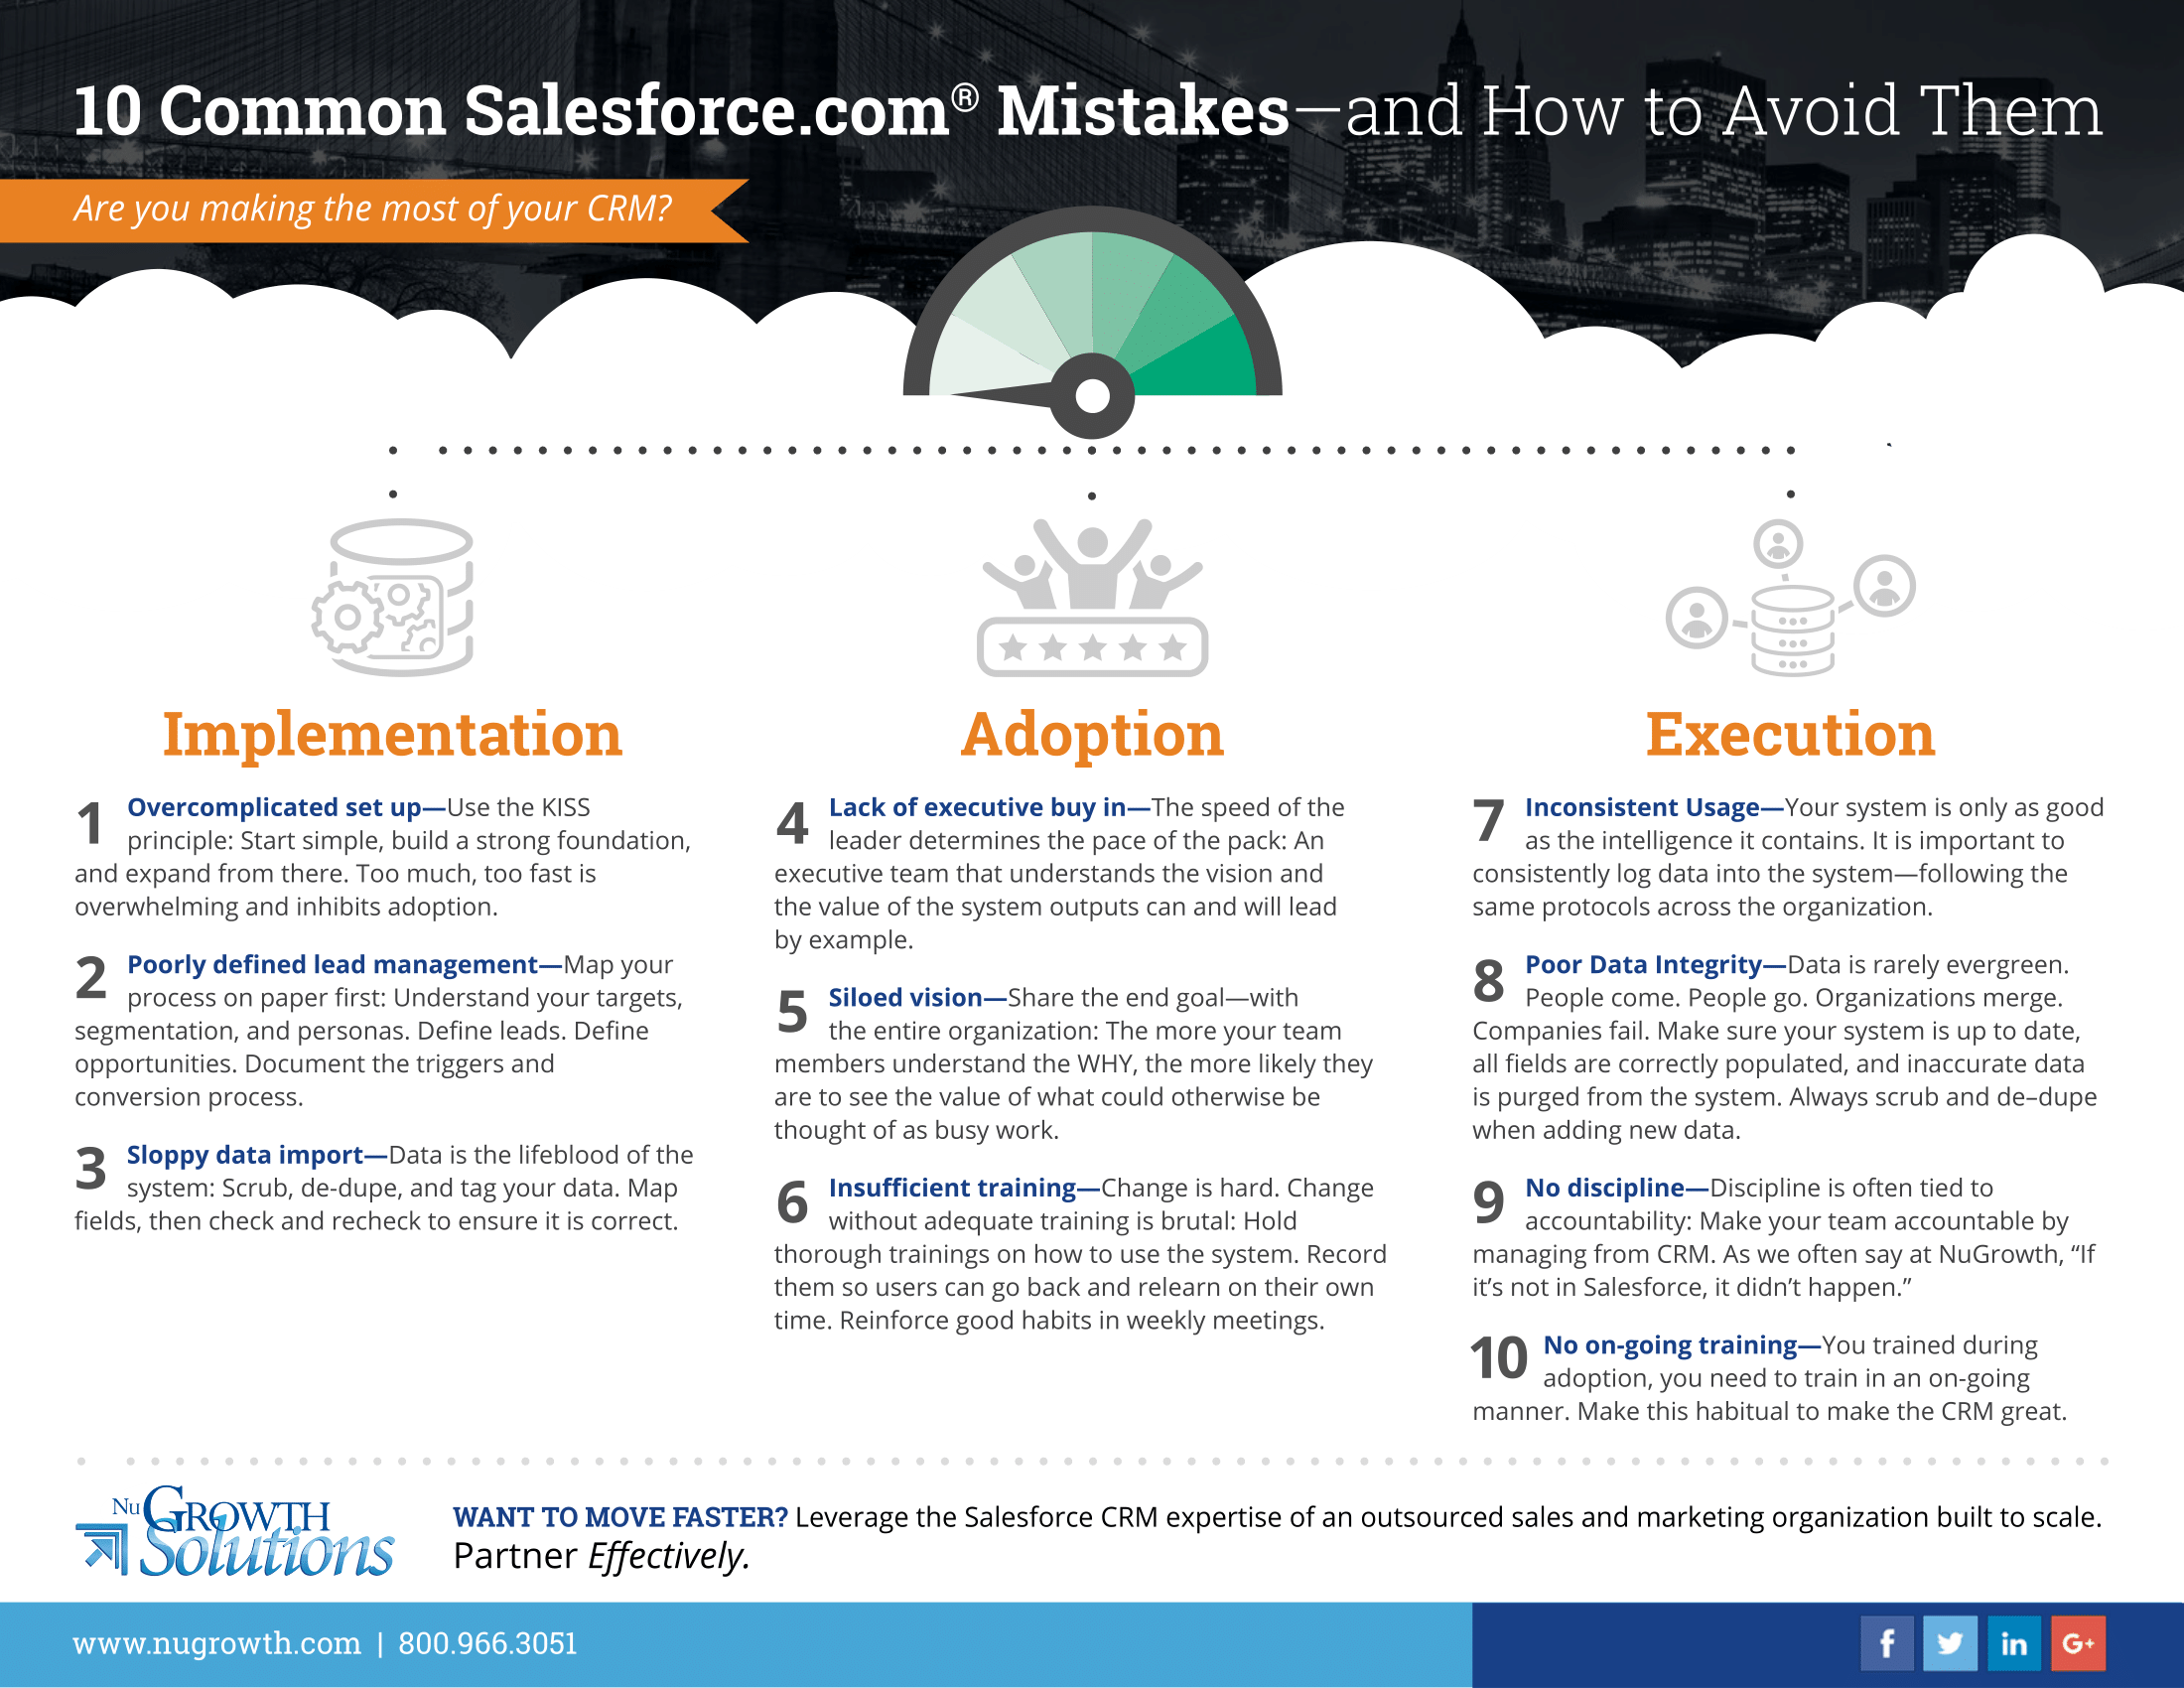 10 Common Salesforce Mistakes—and How to Avoid Them